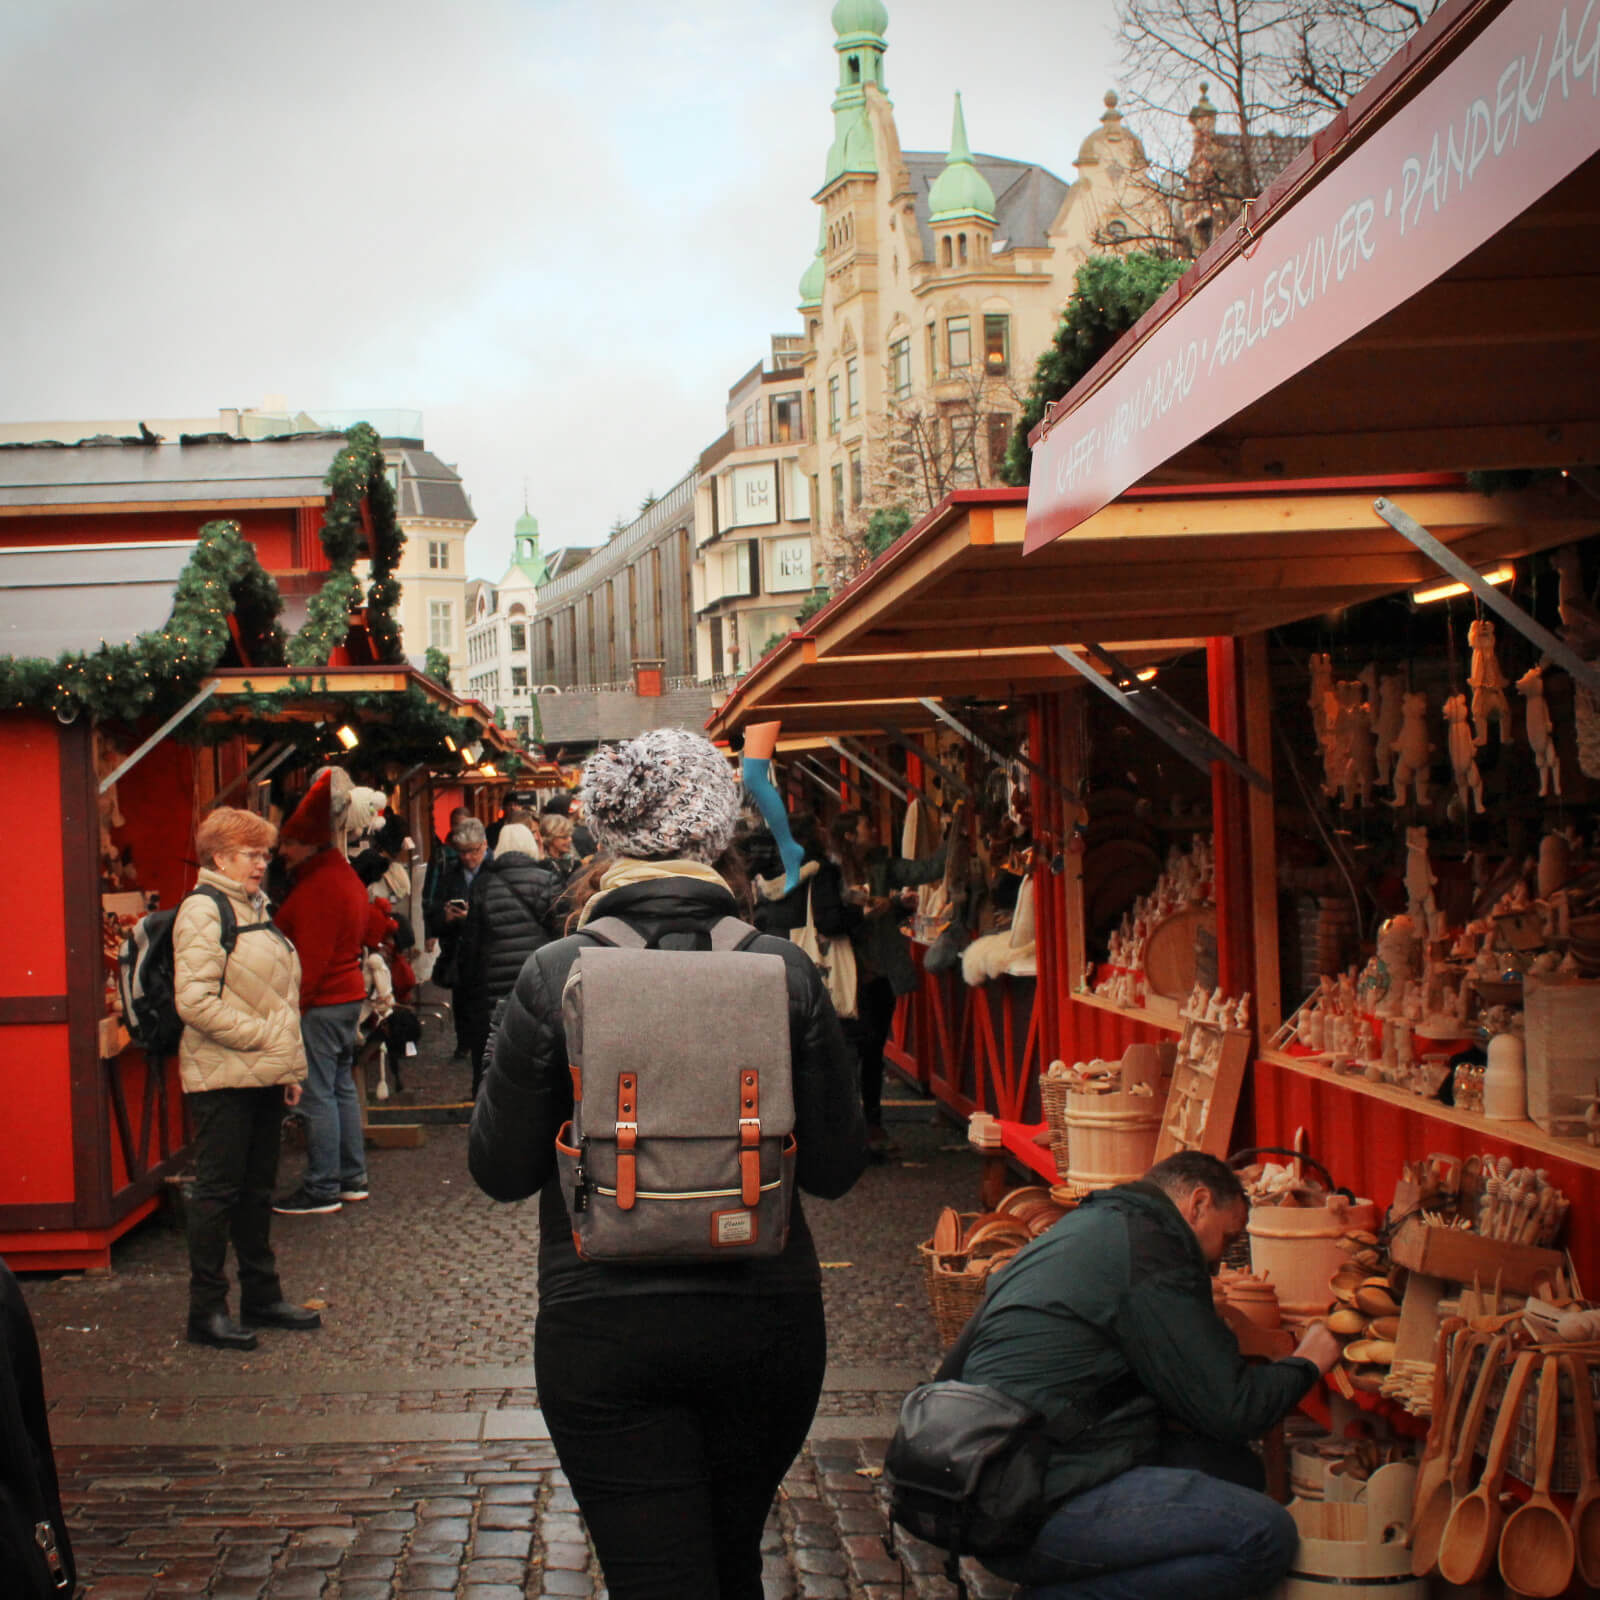 Exploring one of the many Copenhagen Christmas Markets, on the hunt for Danish holiday foods!